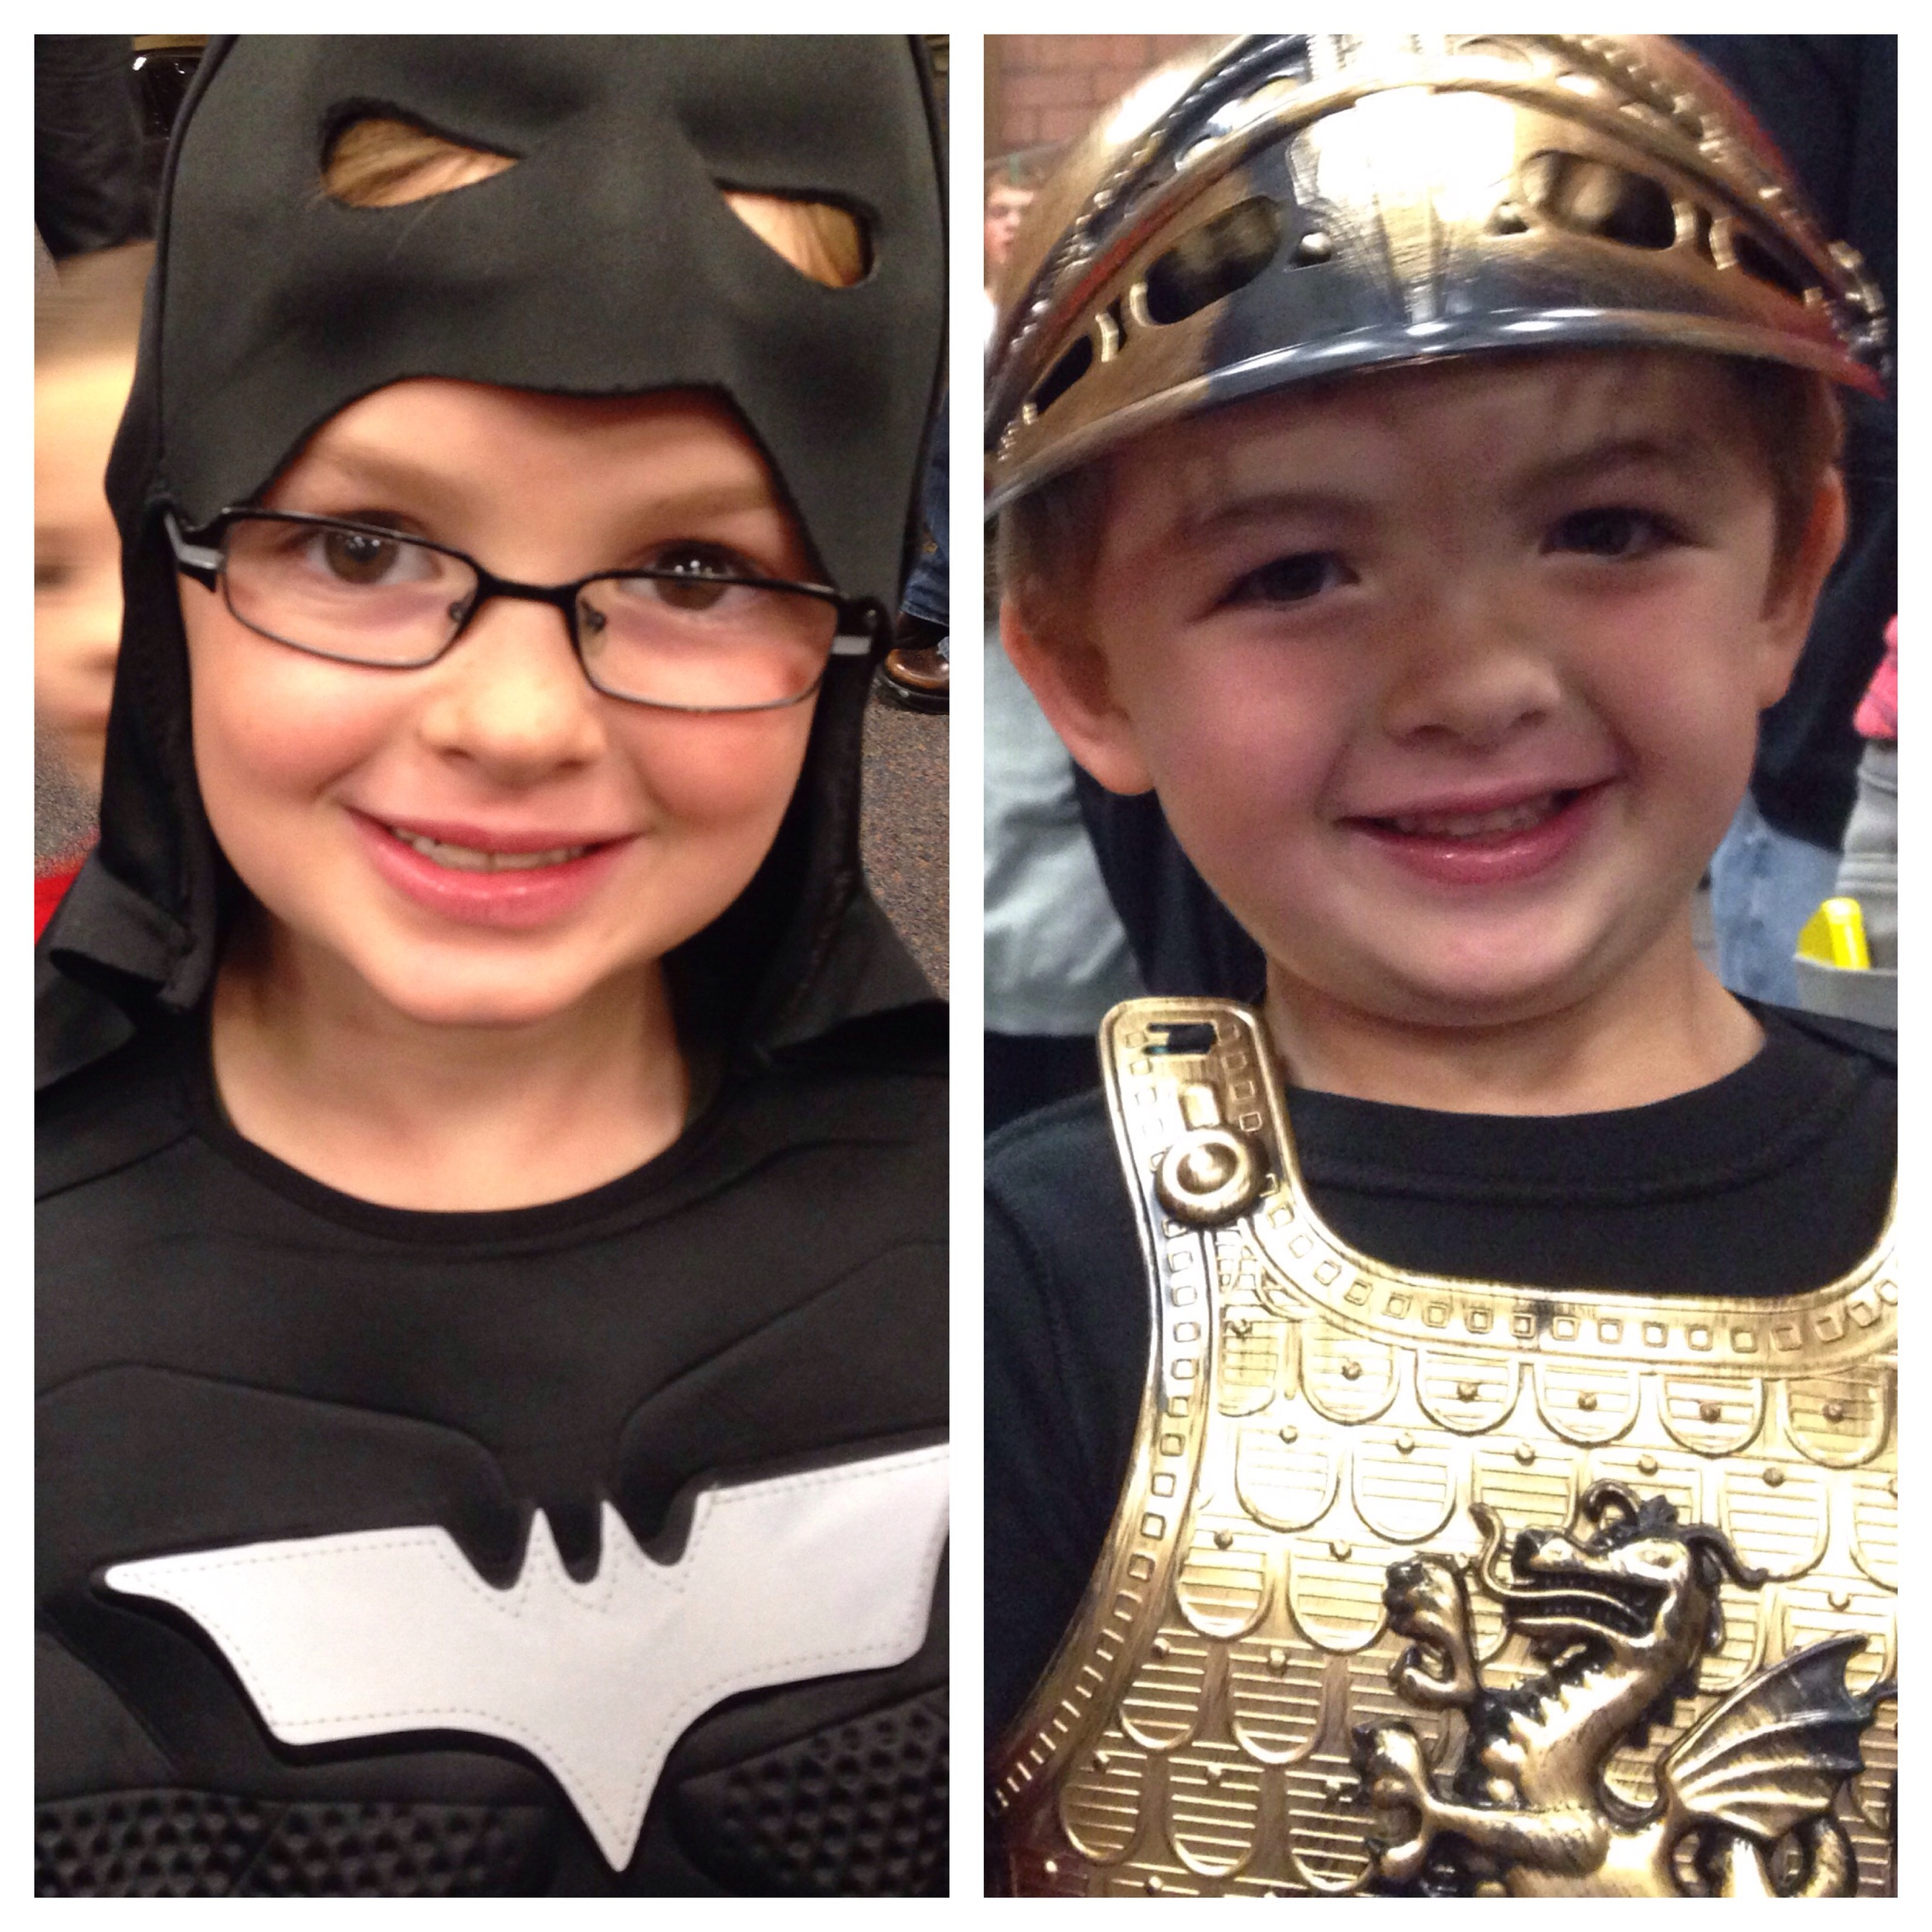 Cousins - Dark Knight and a Knight